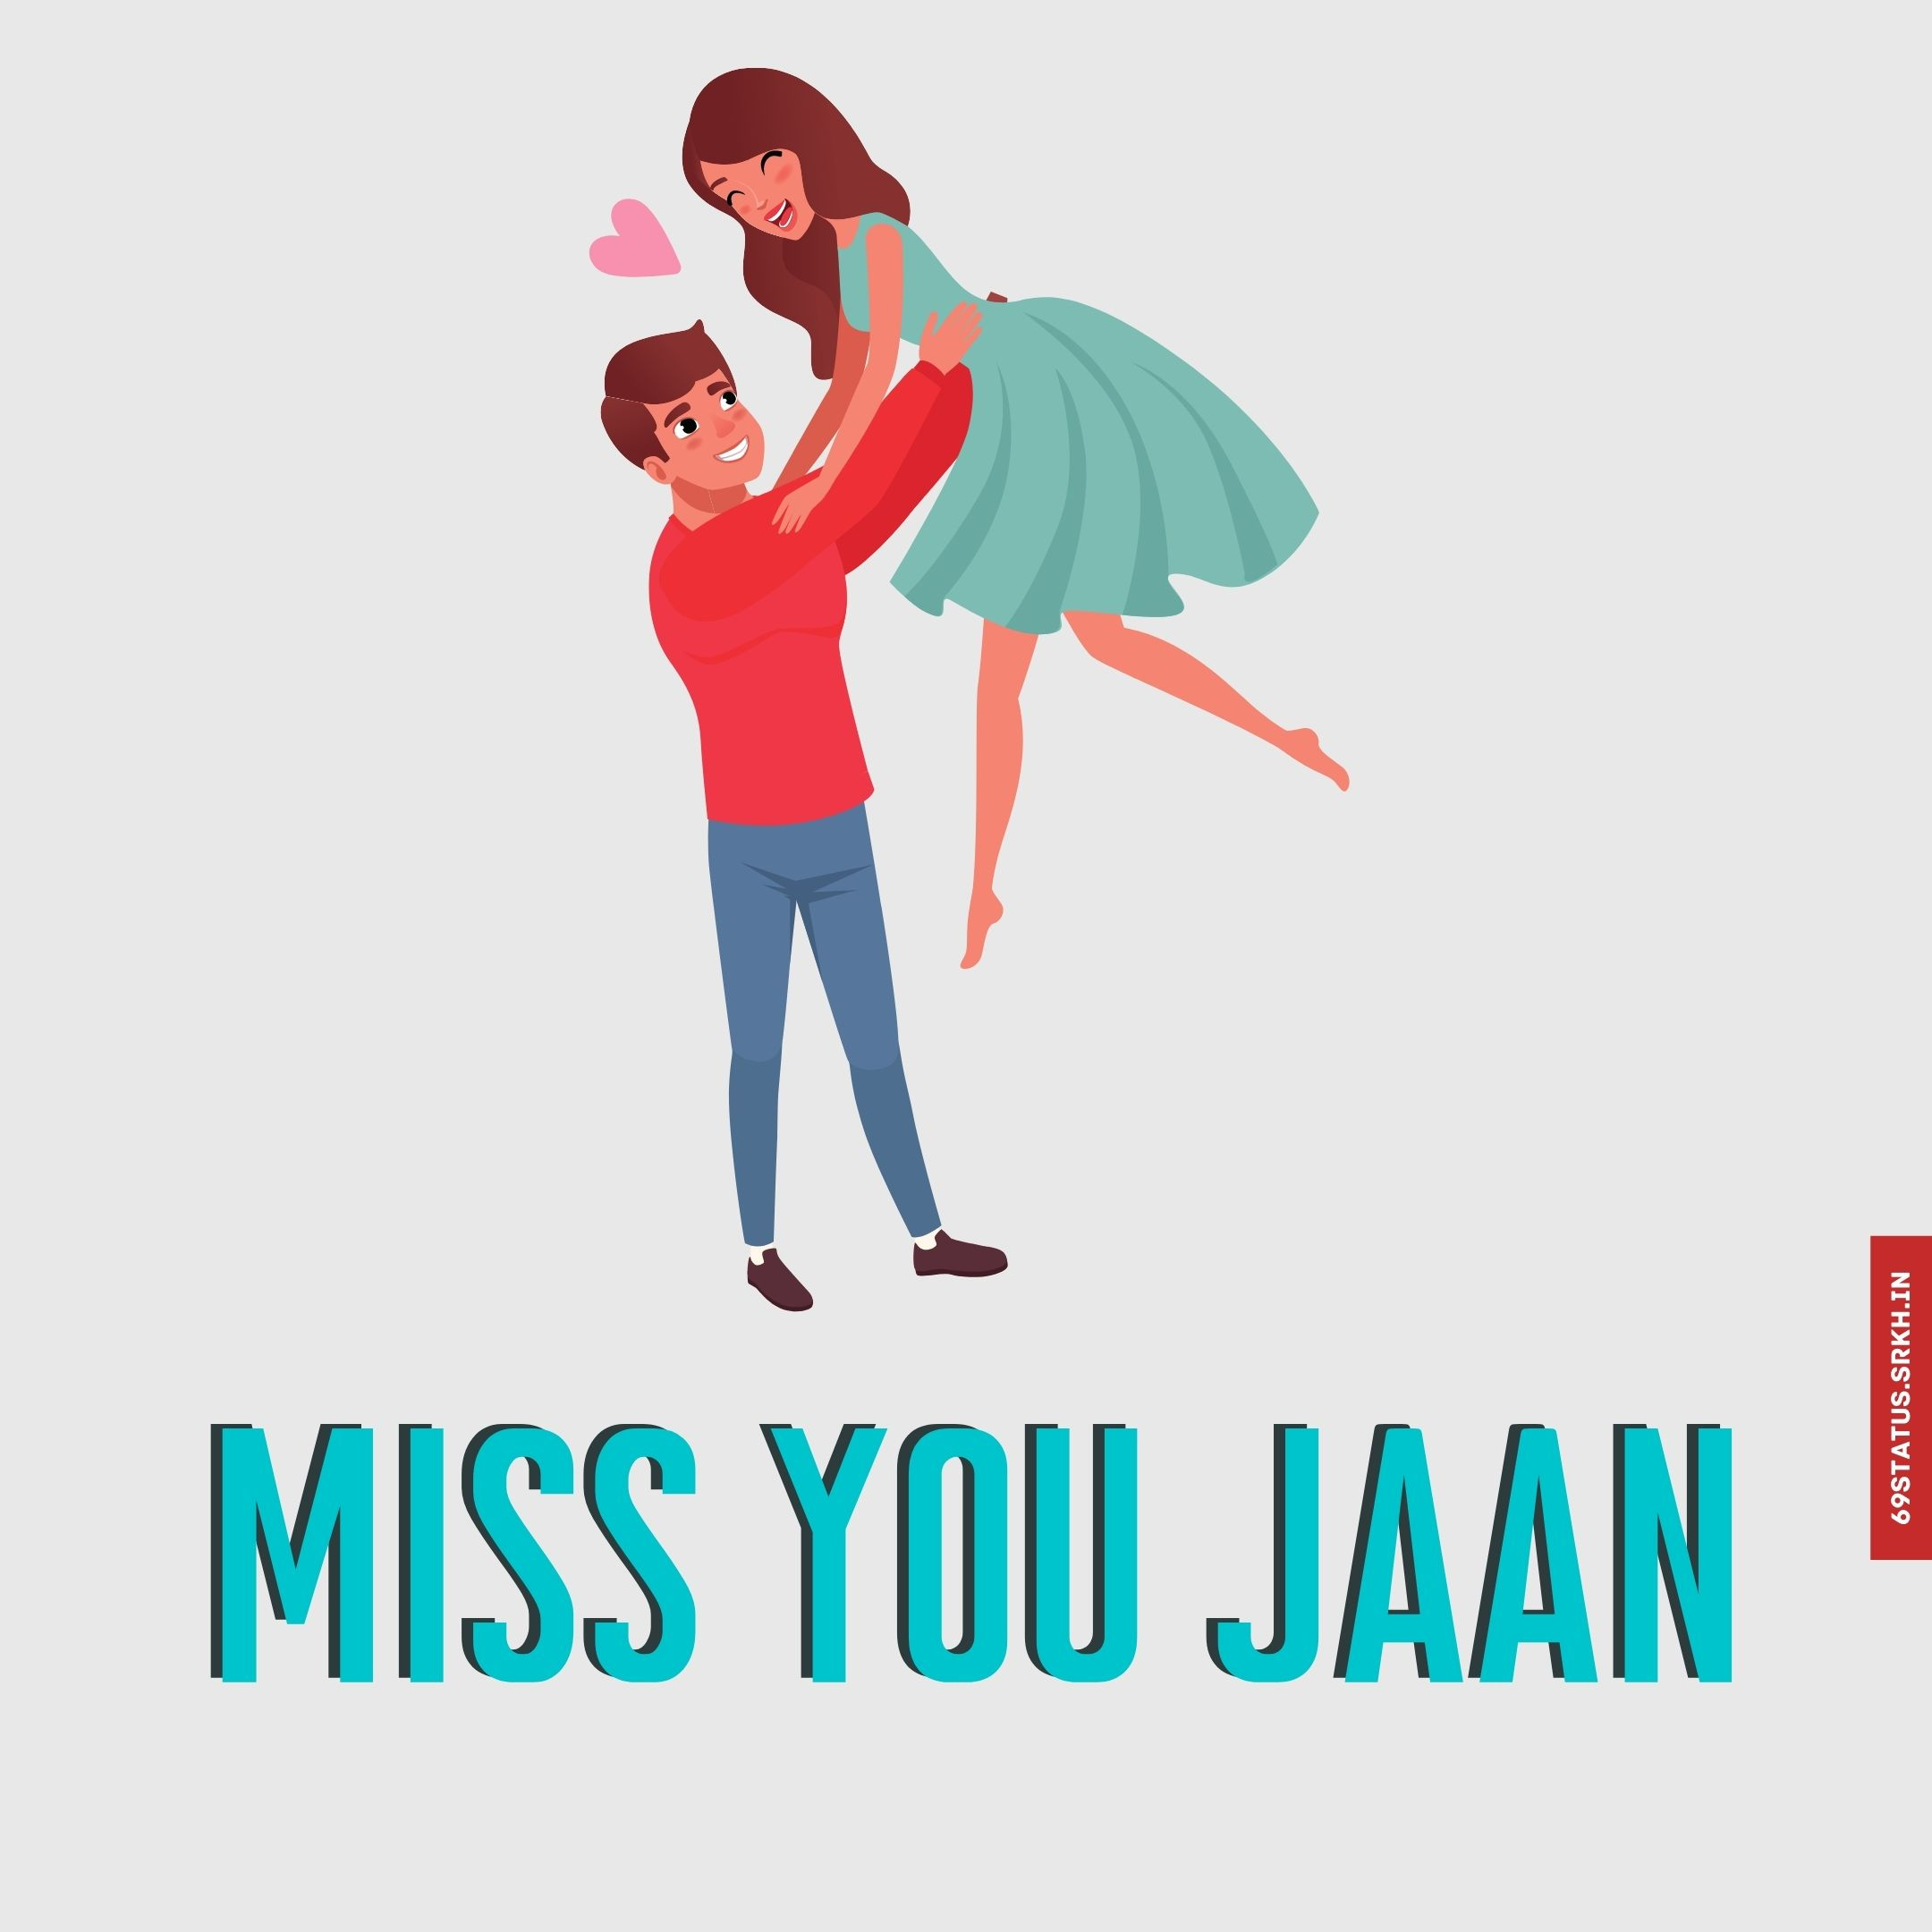 Miss you jaan images full HD free download.